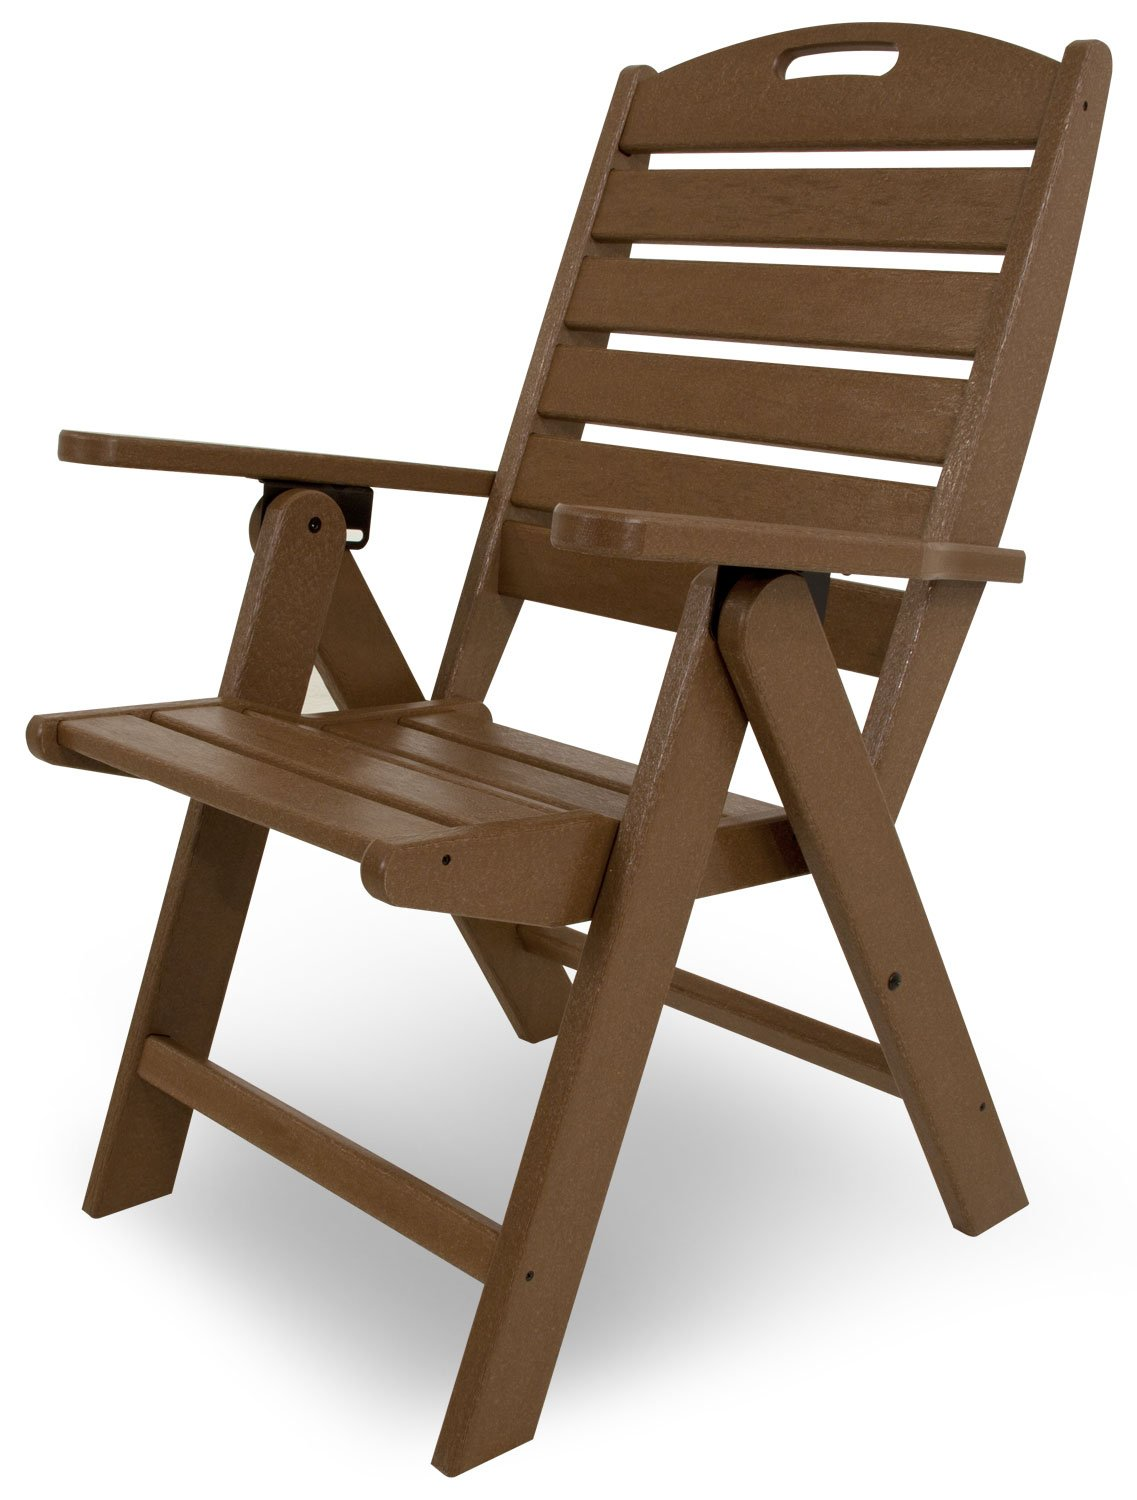 POLYWOOD NCH38TE Nautical Highback Chair, Teak by POLYWOOD